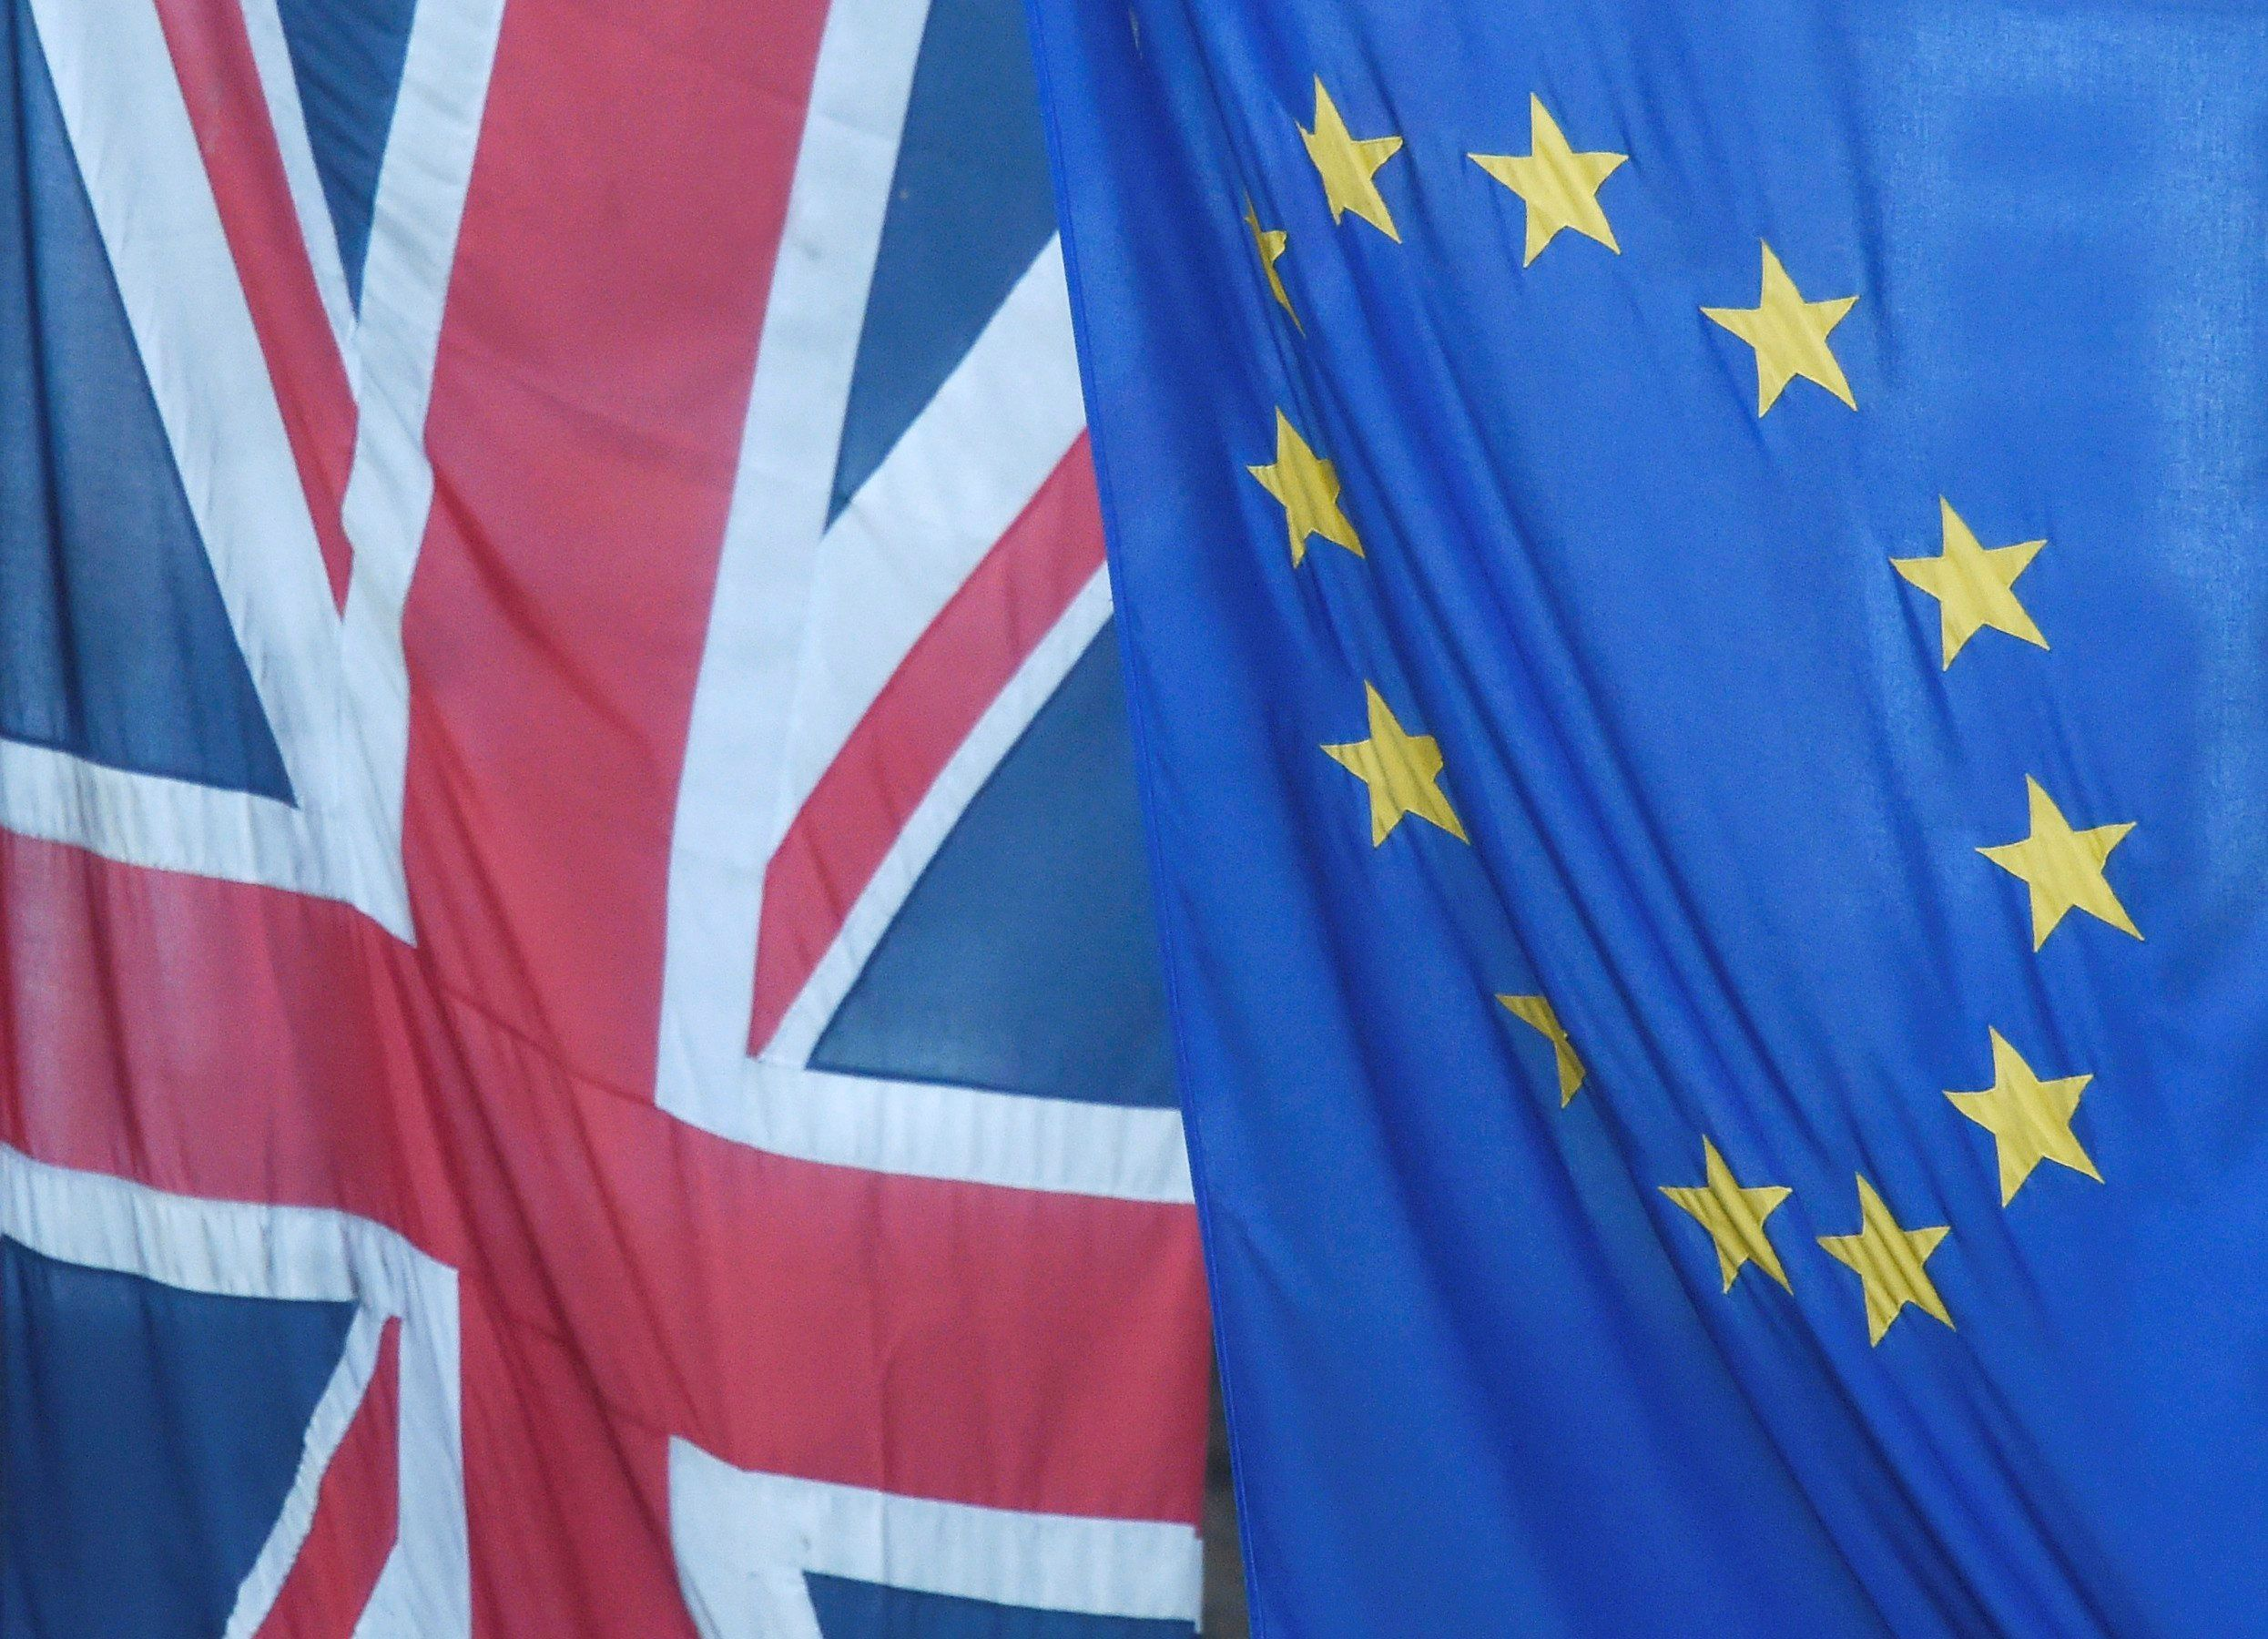 Union Jack and EU flags